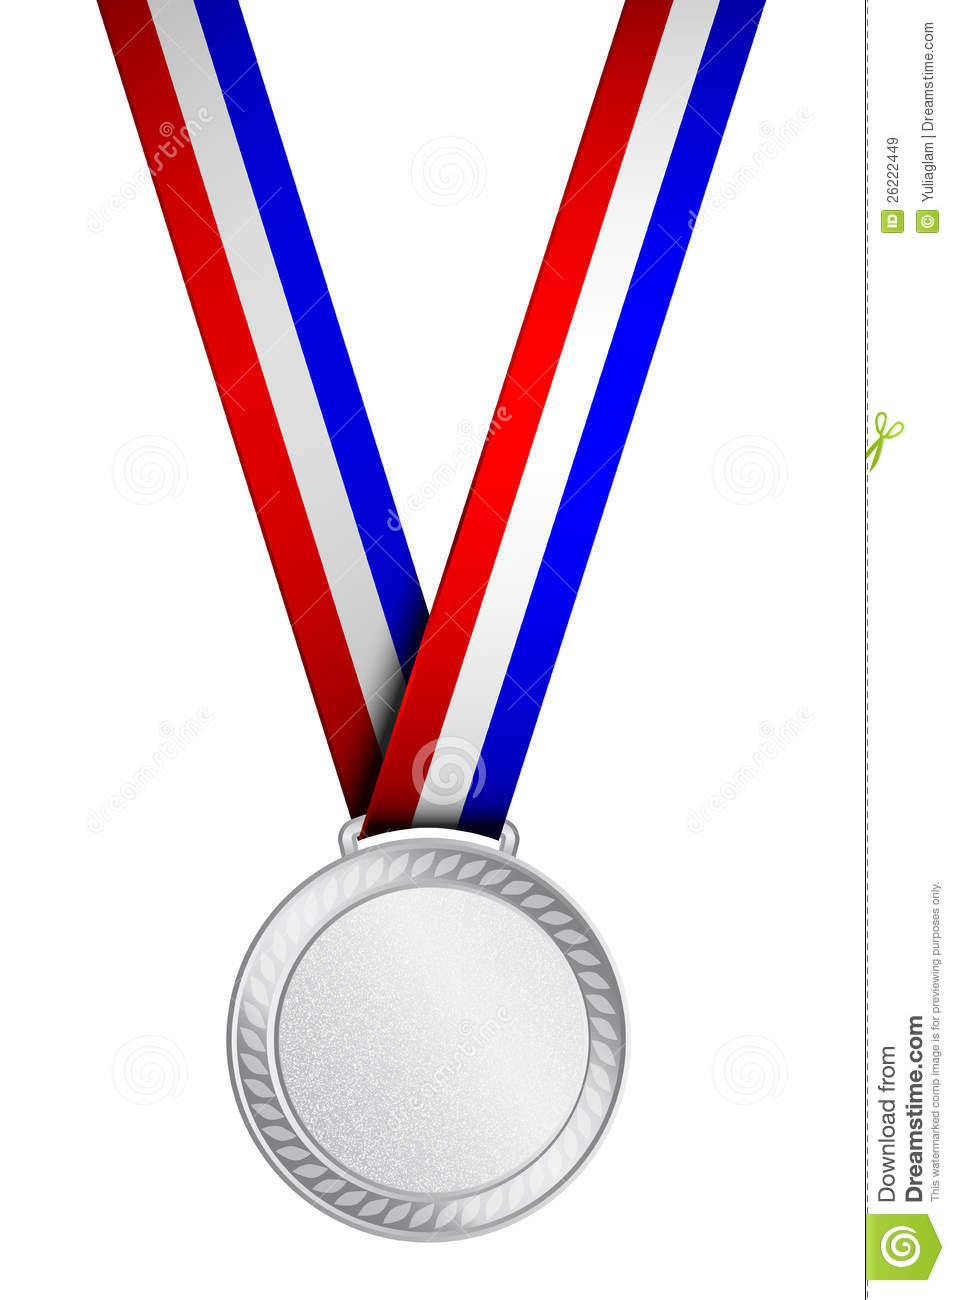 Silver clipart 2nd place medal Silver Clipart Medal Download Award